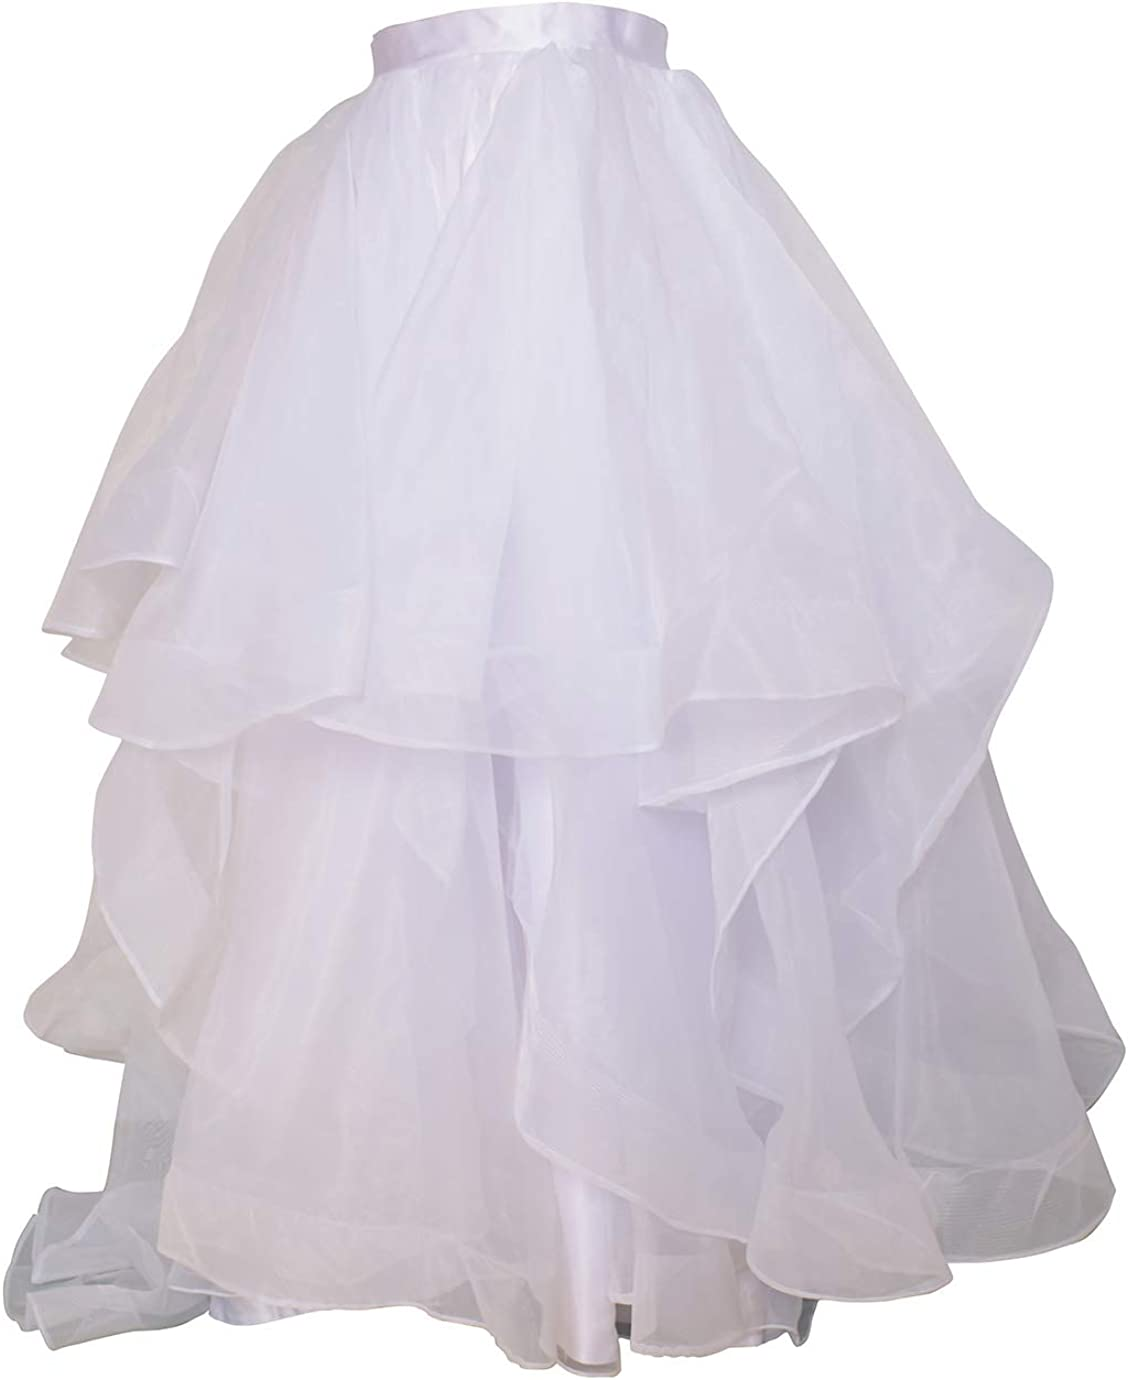 flowerry Women Maxi Bridal Skirt Wedding Skirt With Train Party Prom Skirt